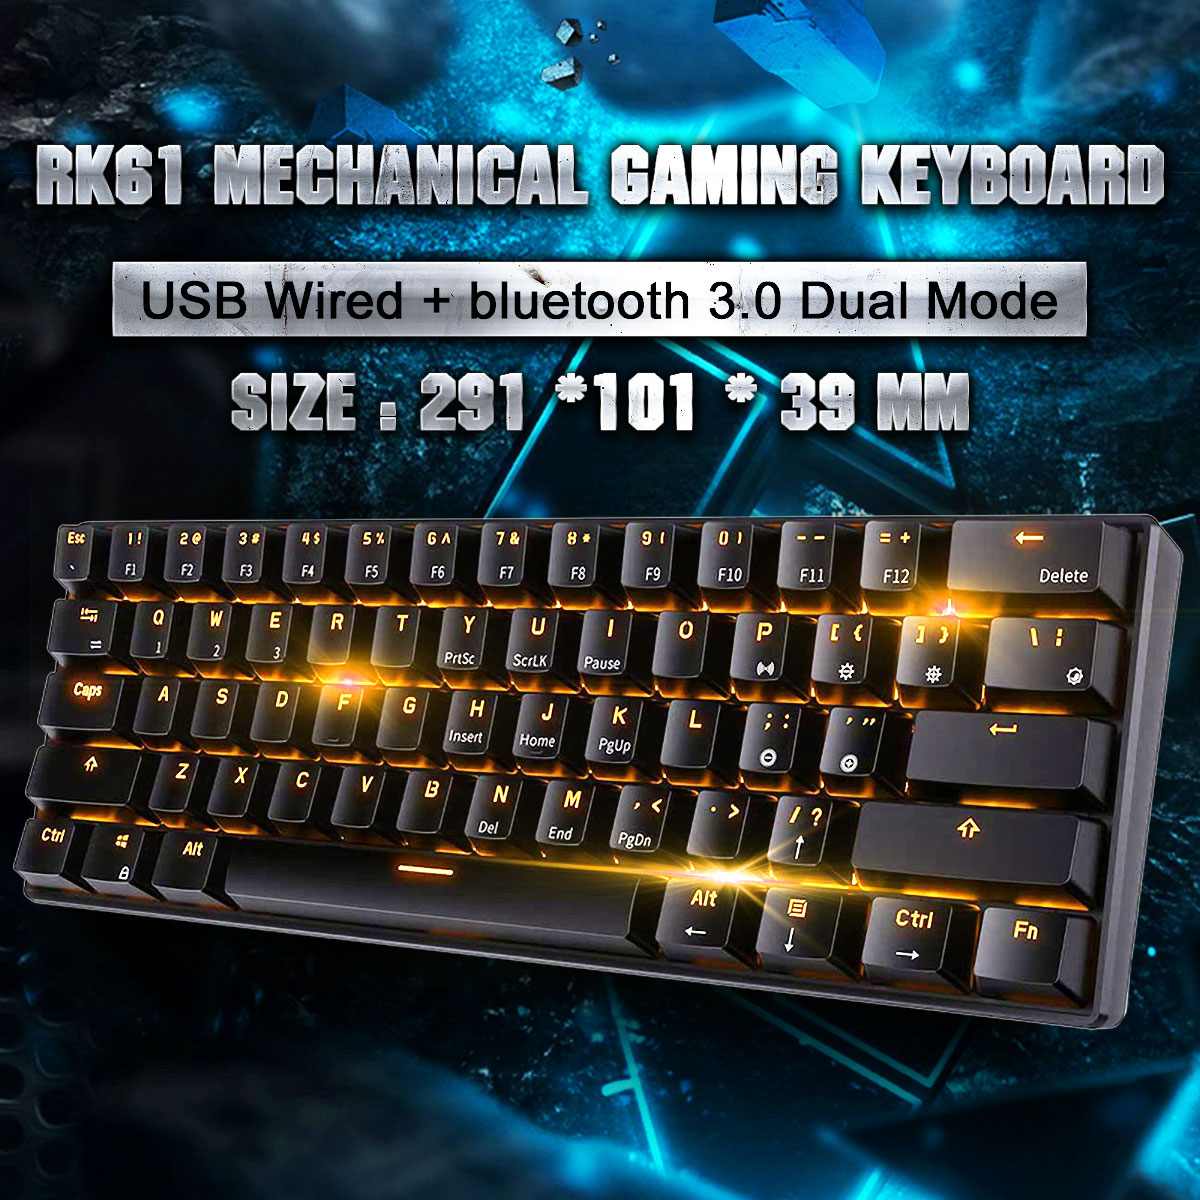 Royal Kludge Rk61 Mechanical Gaming Keyboard Bluetooth Wired Dual Mode 61 Key Rgb Backlit Office Keyboard For Pc For Mac For Linuxfor Ipad For Iphone For Smartphone Laptop Walmart Com Walmart Com